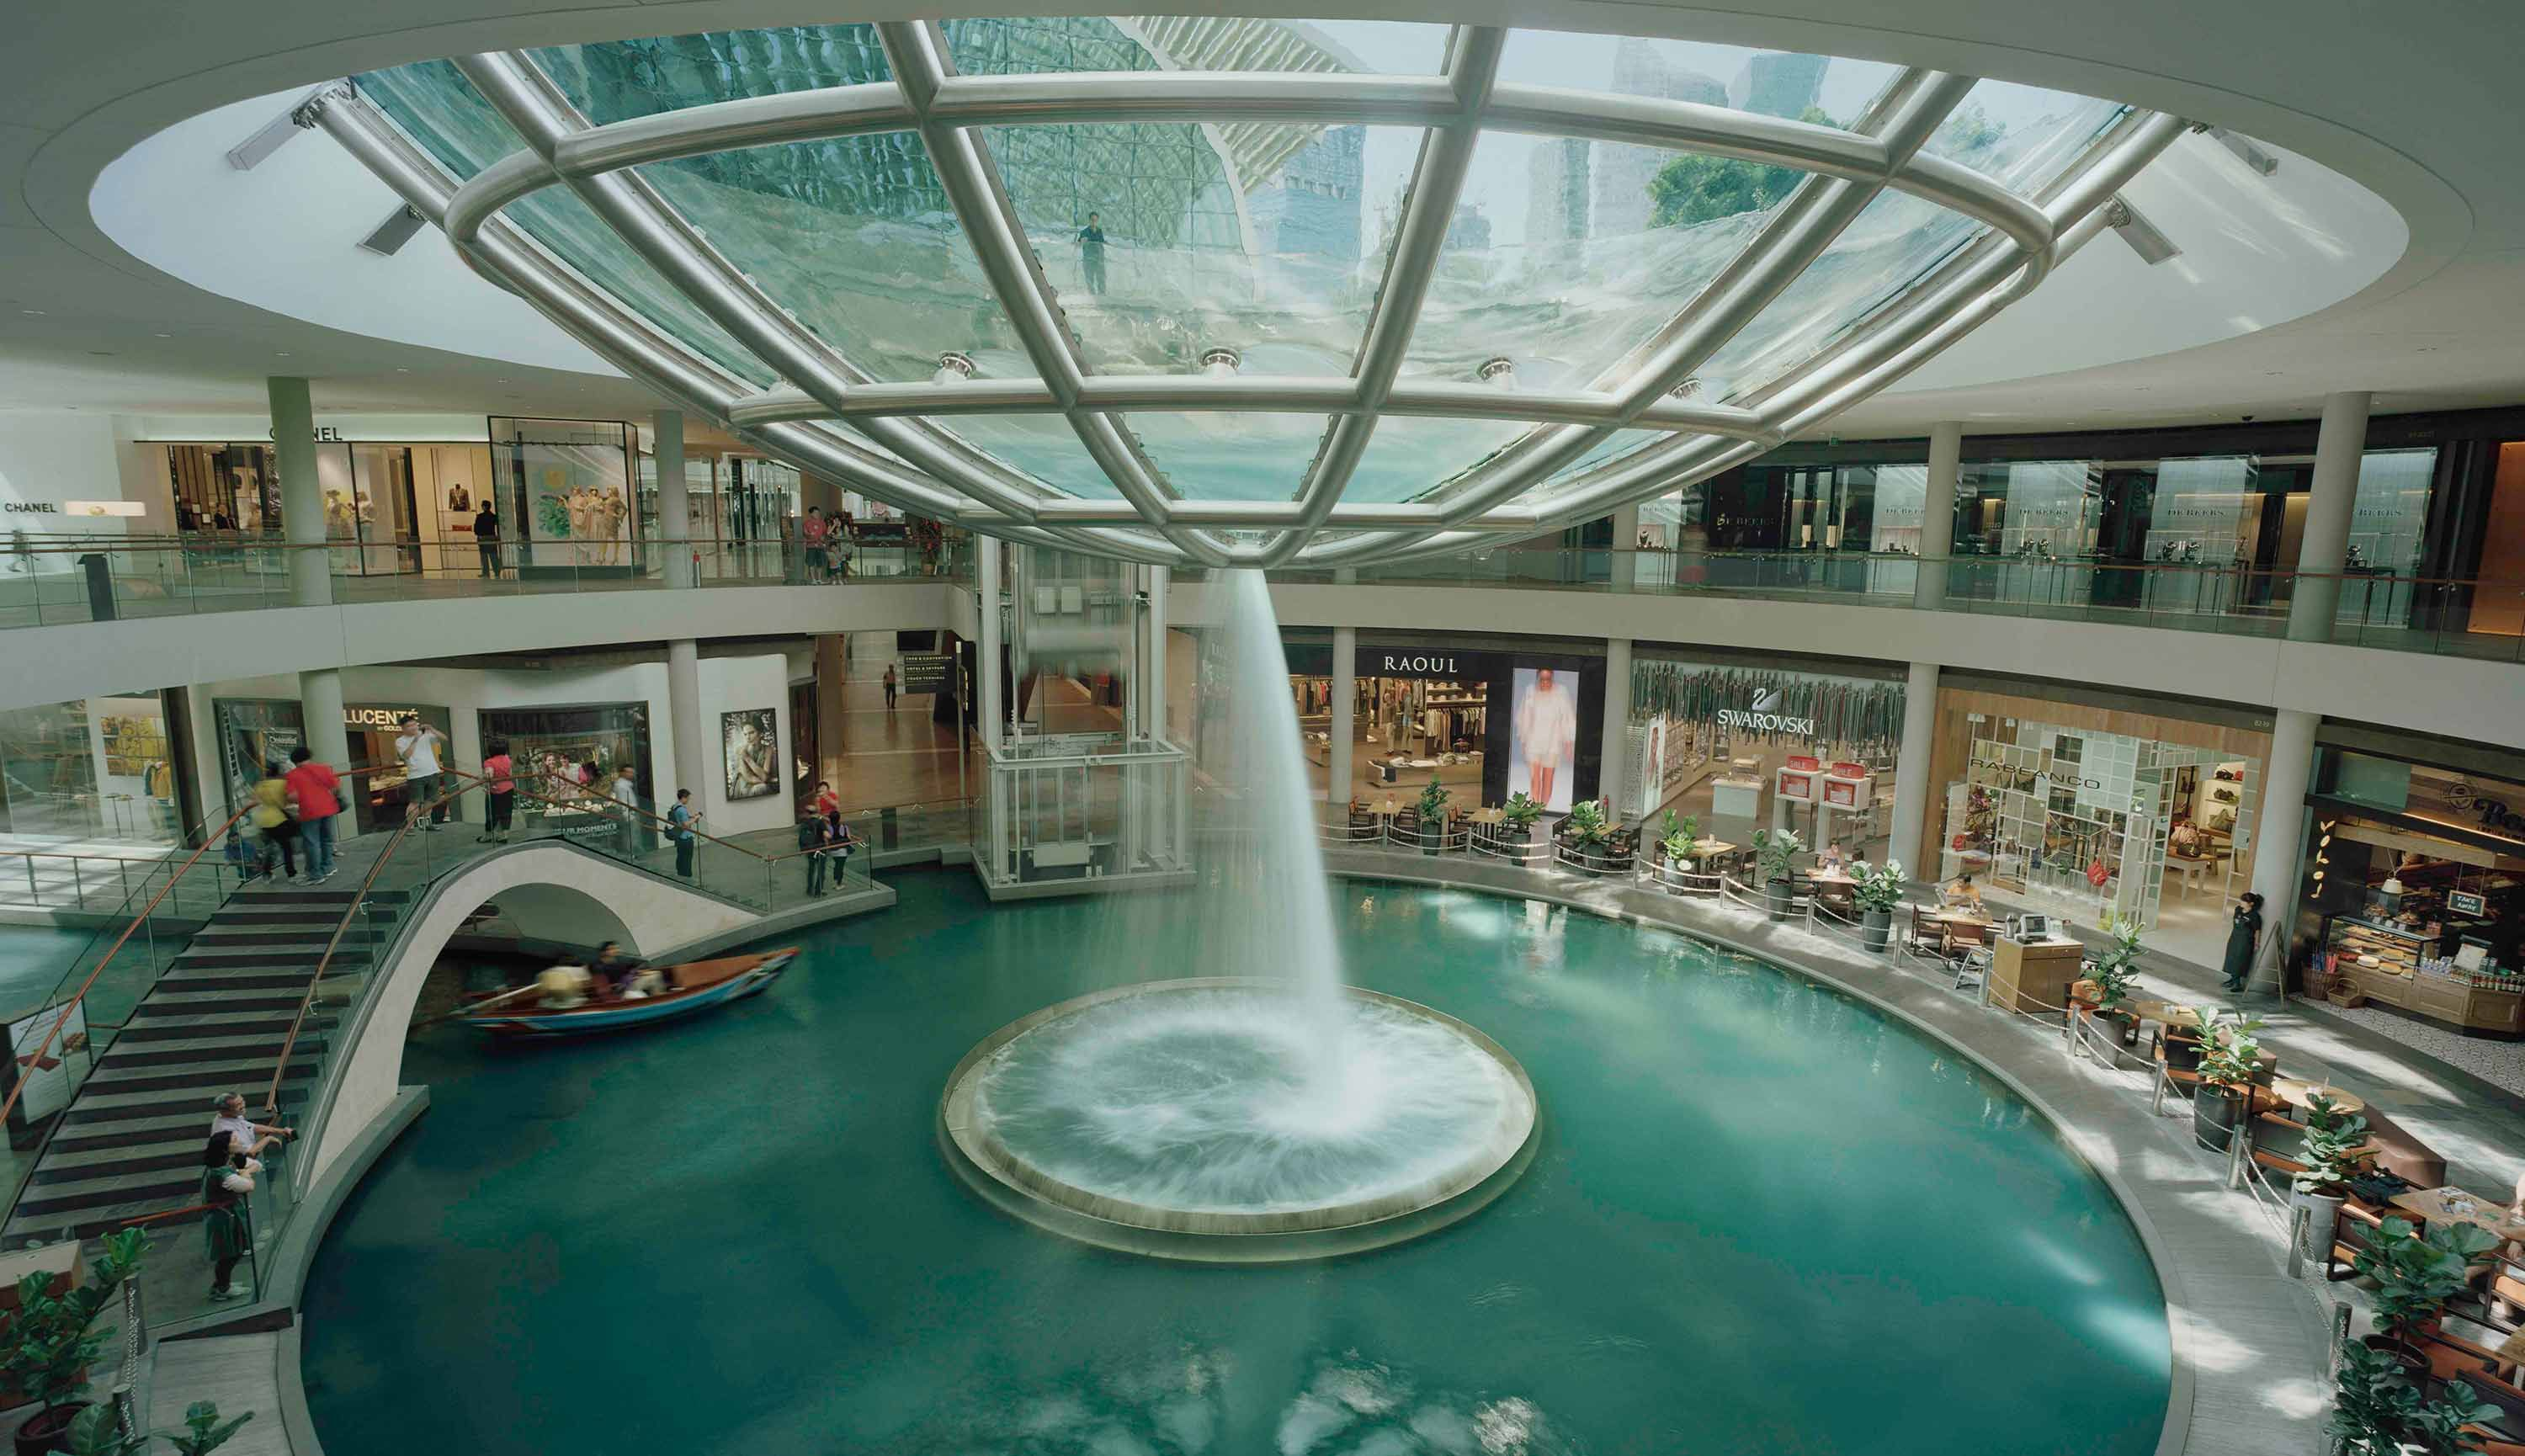 Singapore: The Shoppes at Marina Bay Sands | My Favourite